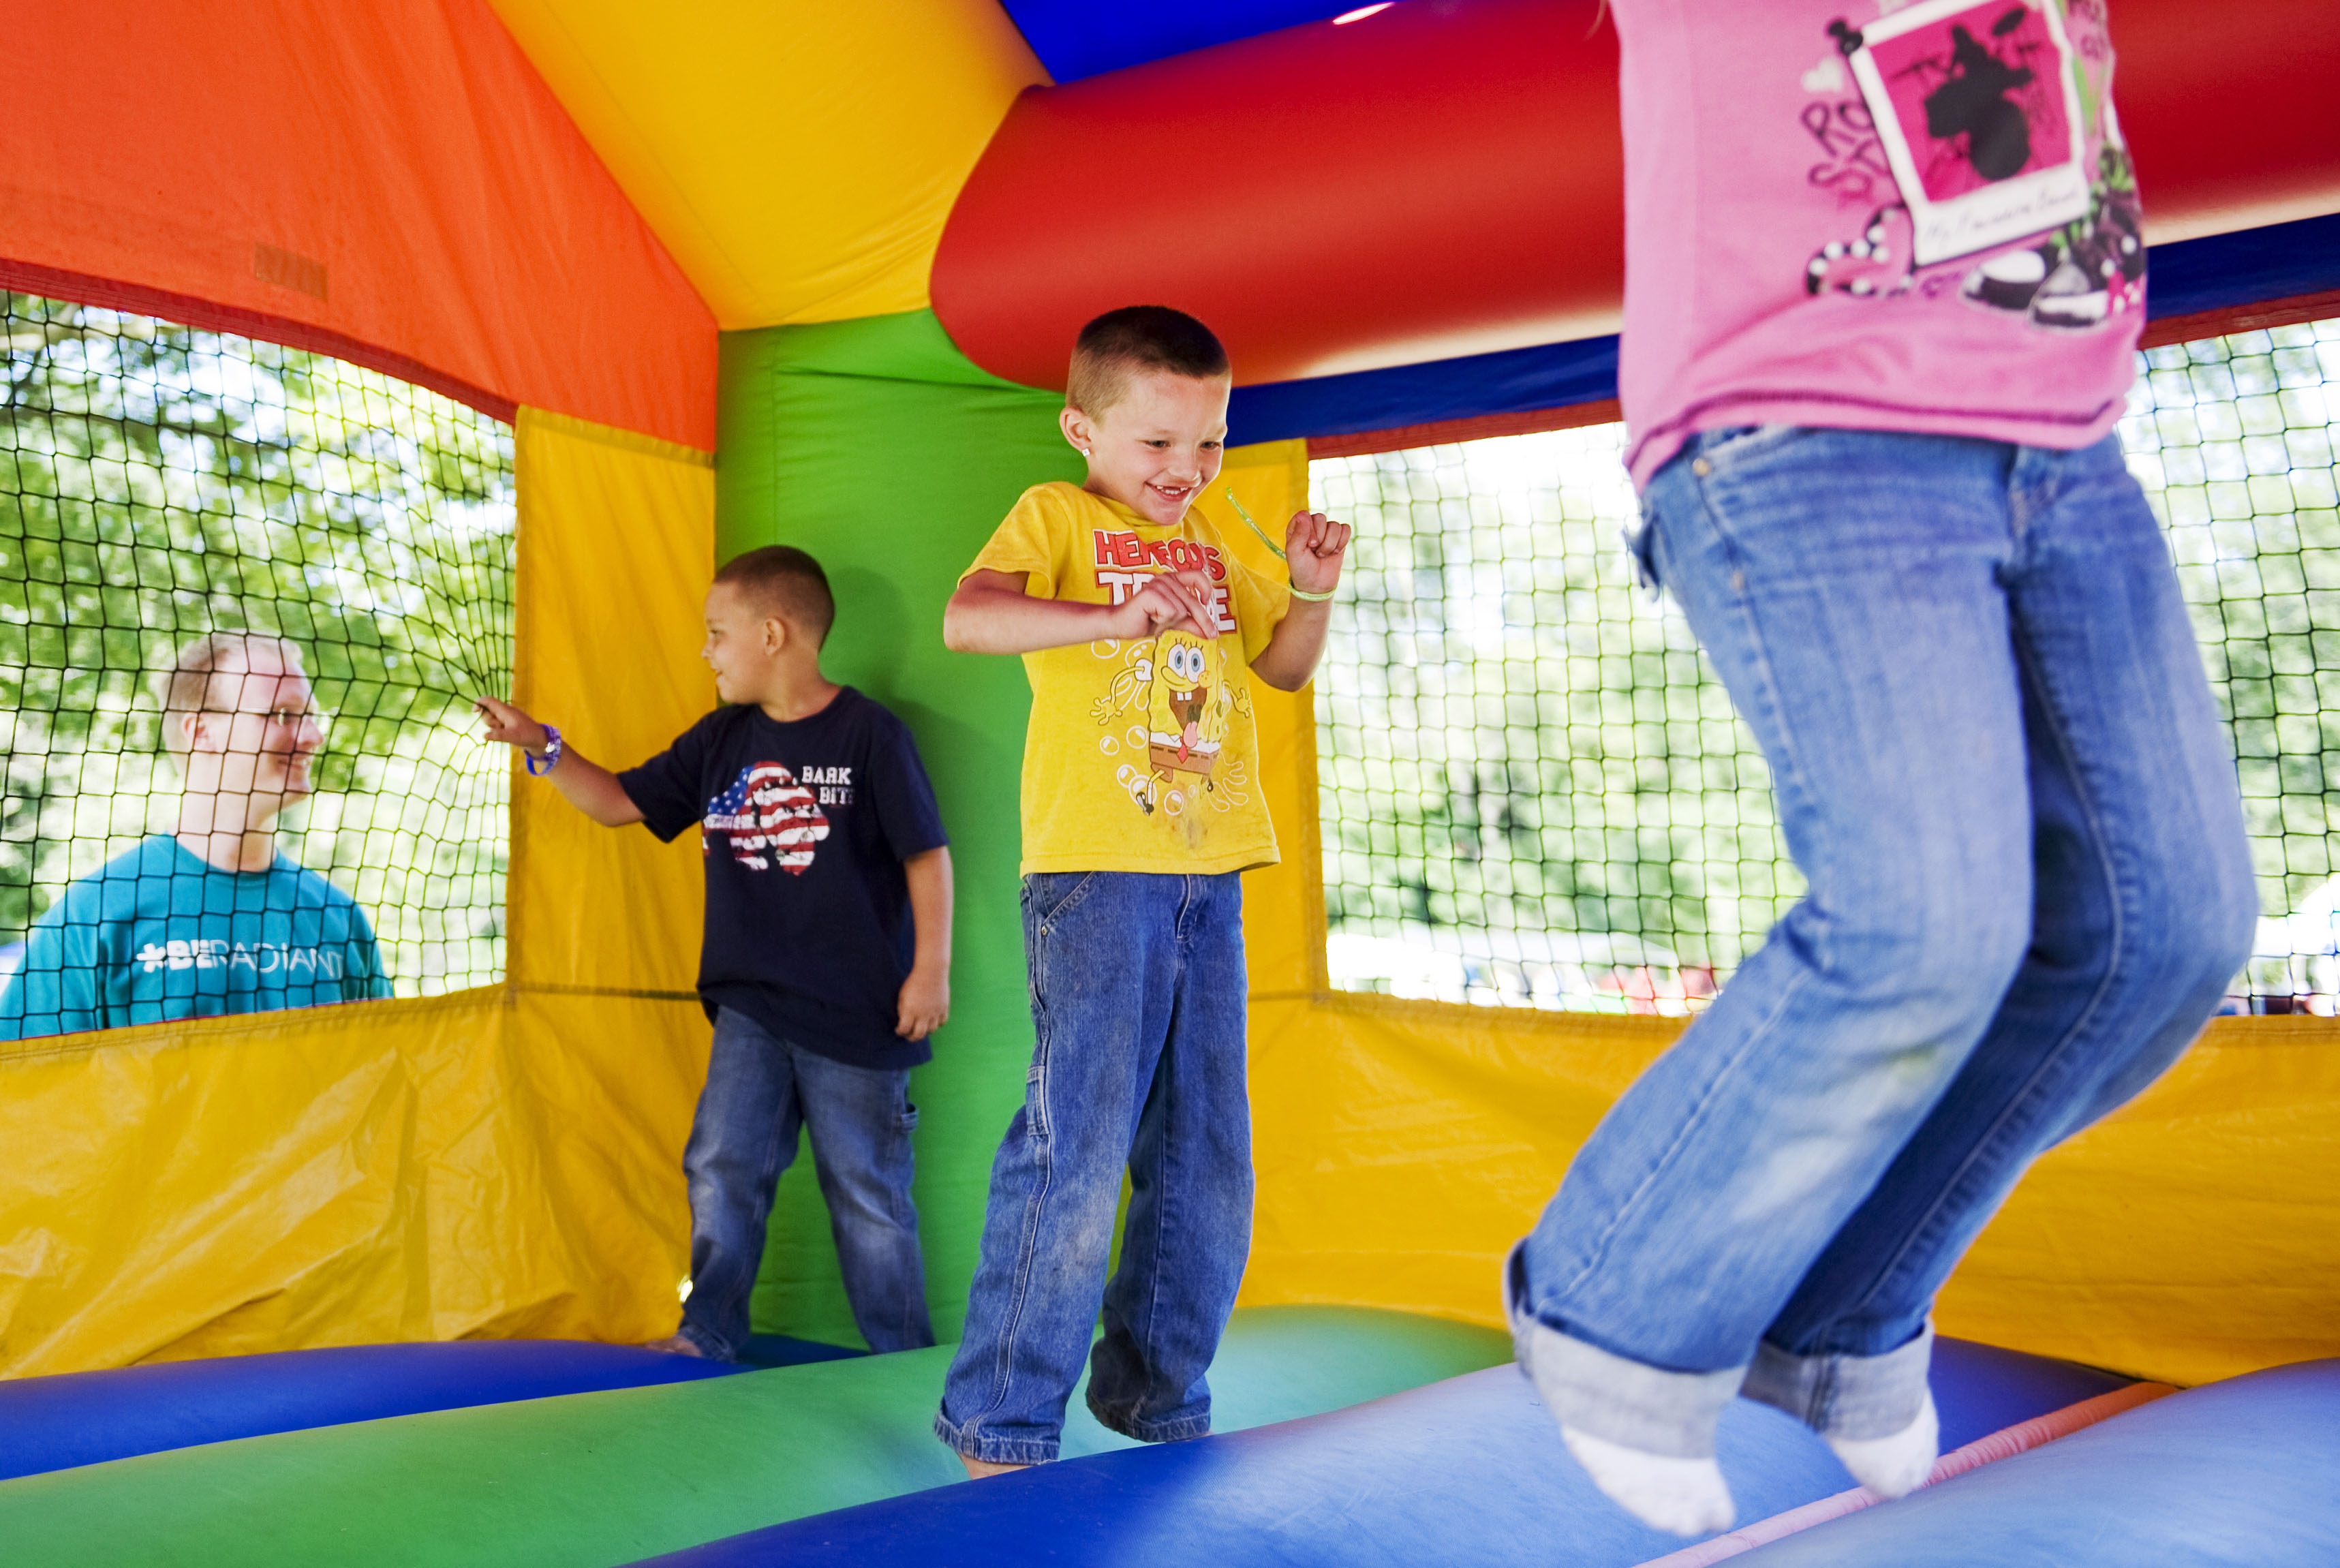 Great bounce house jumping party